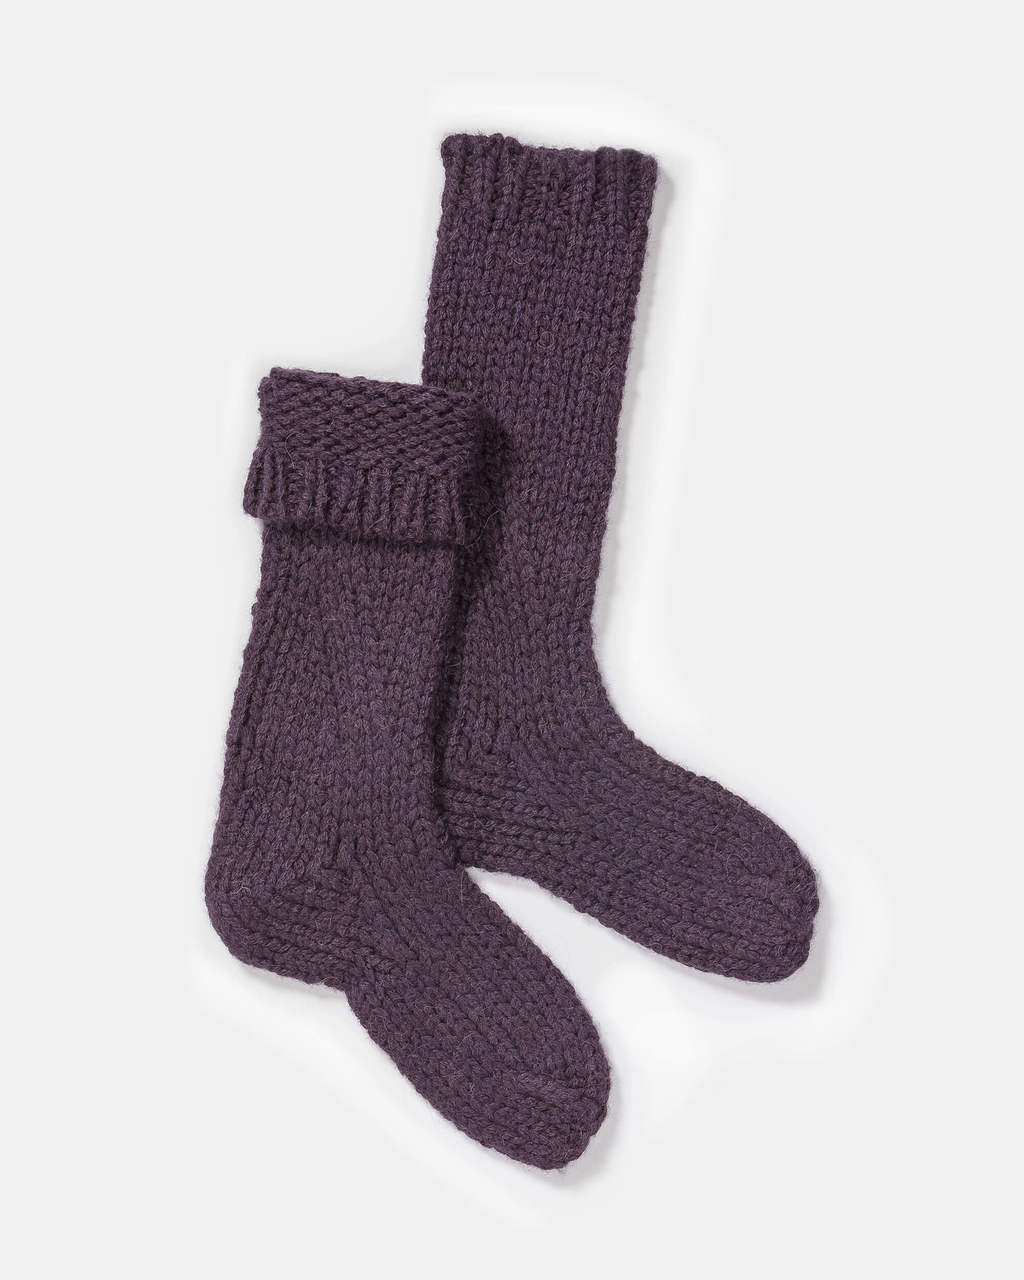 Alicia Adams Alpaca Lounge Sock, alpaca socks, womens alpaca socks, alpaca socks men, alpaca wool socks, dark purple alpaca socks